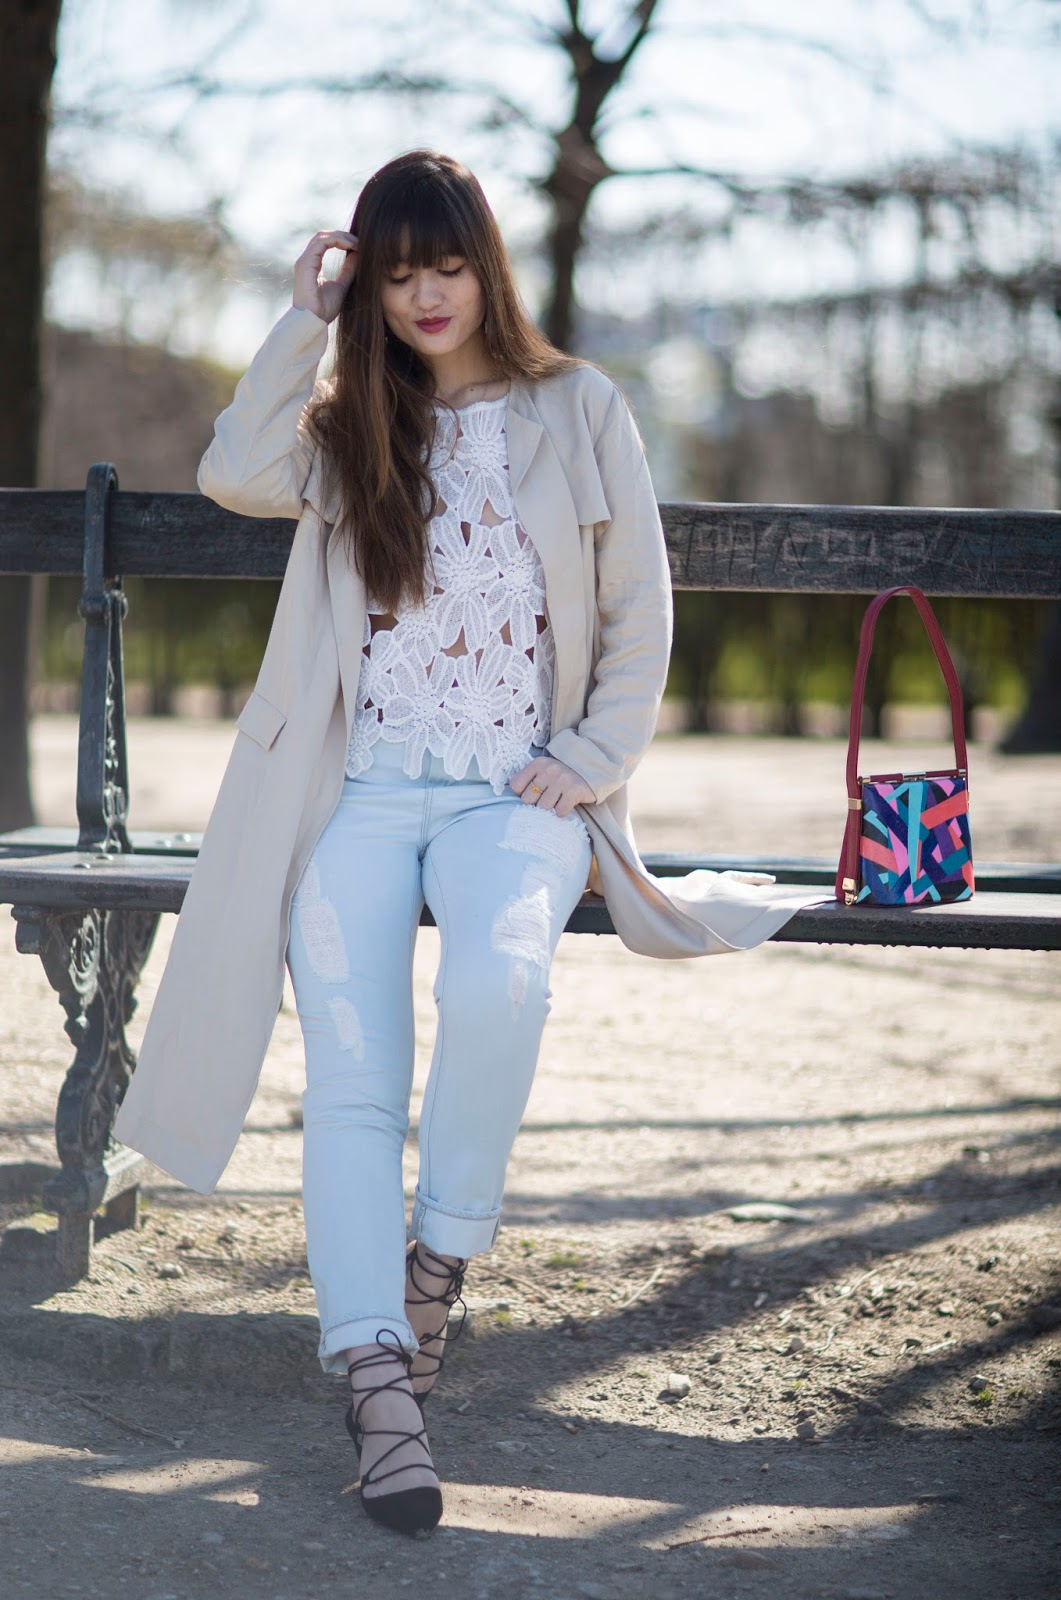 parisian fashion blogger, look, style, meet me in paree, chic style, chicwish